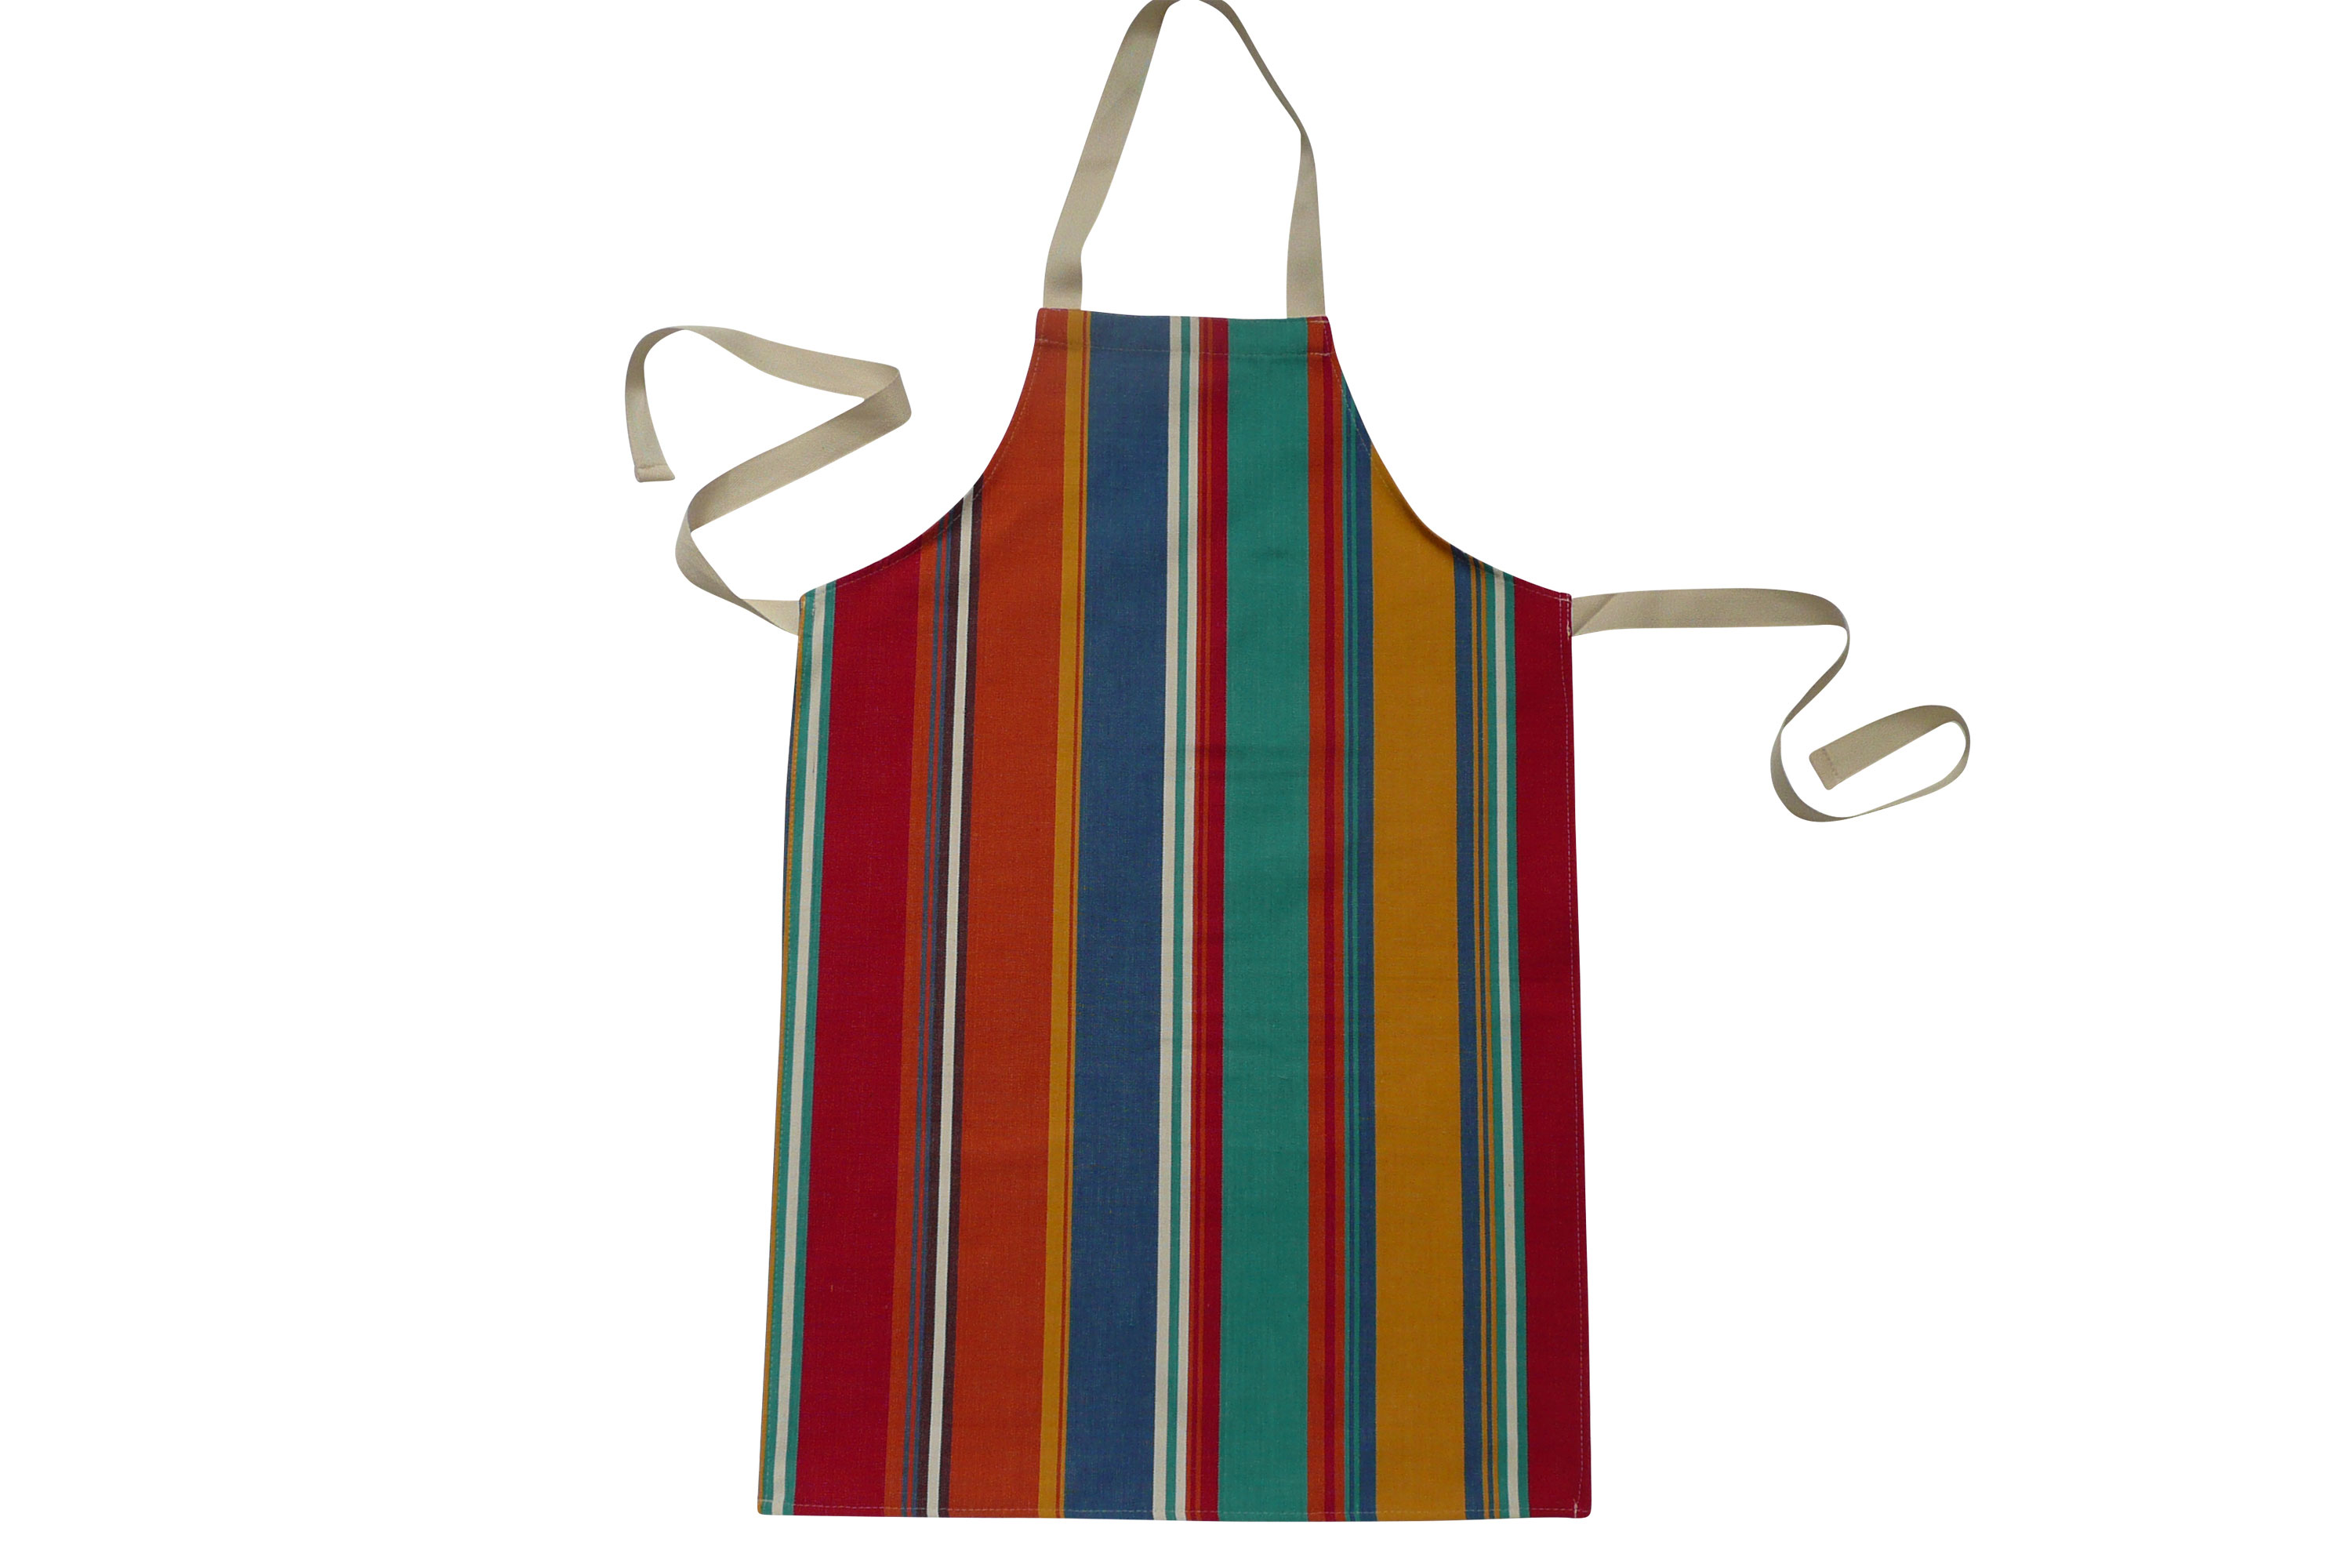 Striped Kids Aprons | Aprons for Childrenorange, blue, jade green